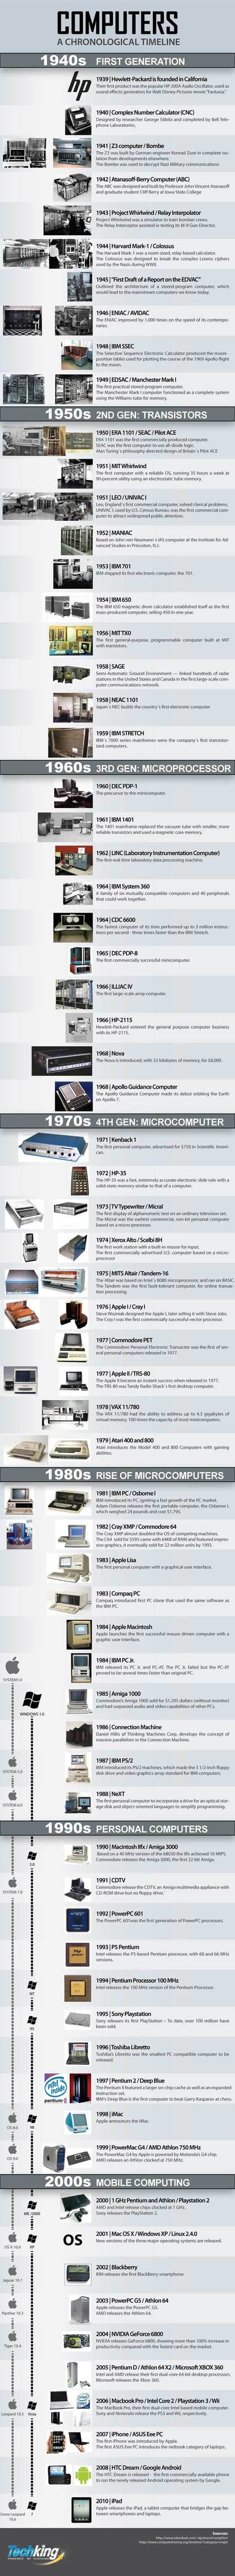 Computers : A Chronological Timeline | Infographics | Scoop.it